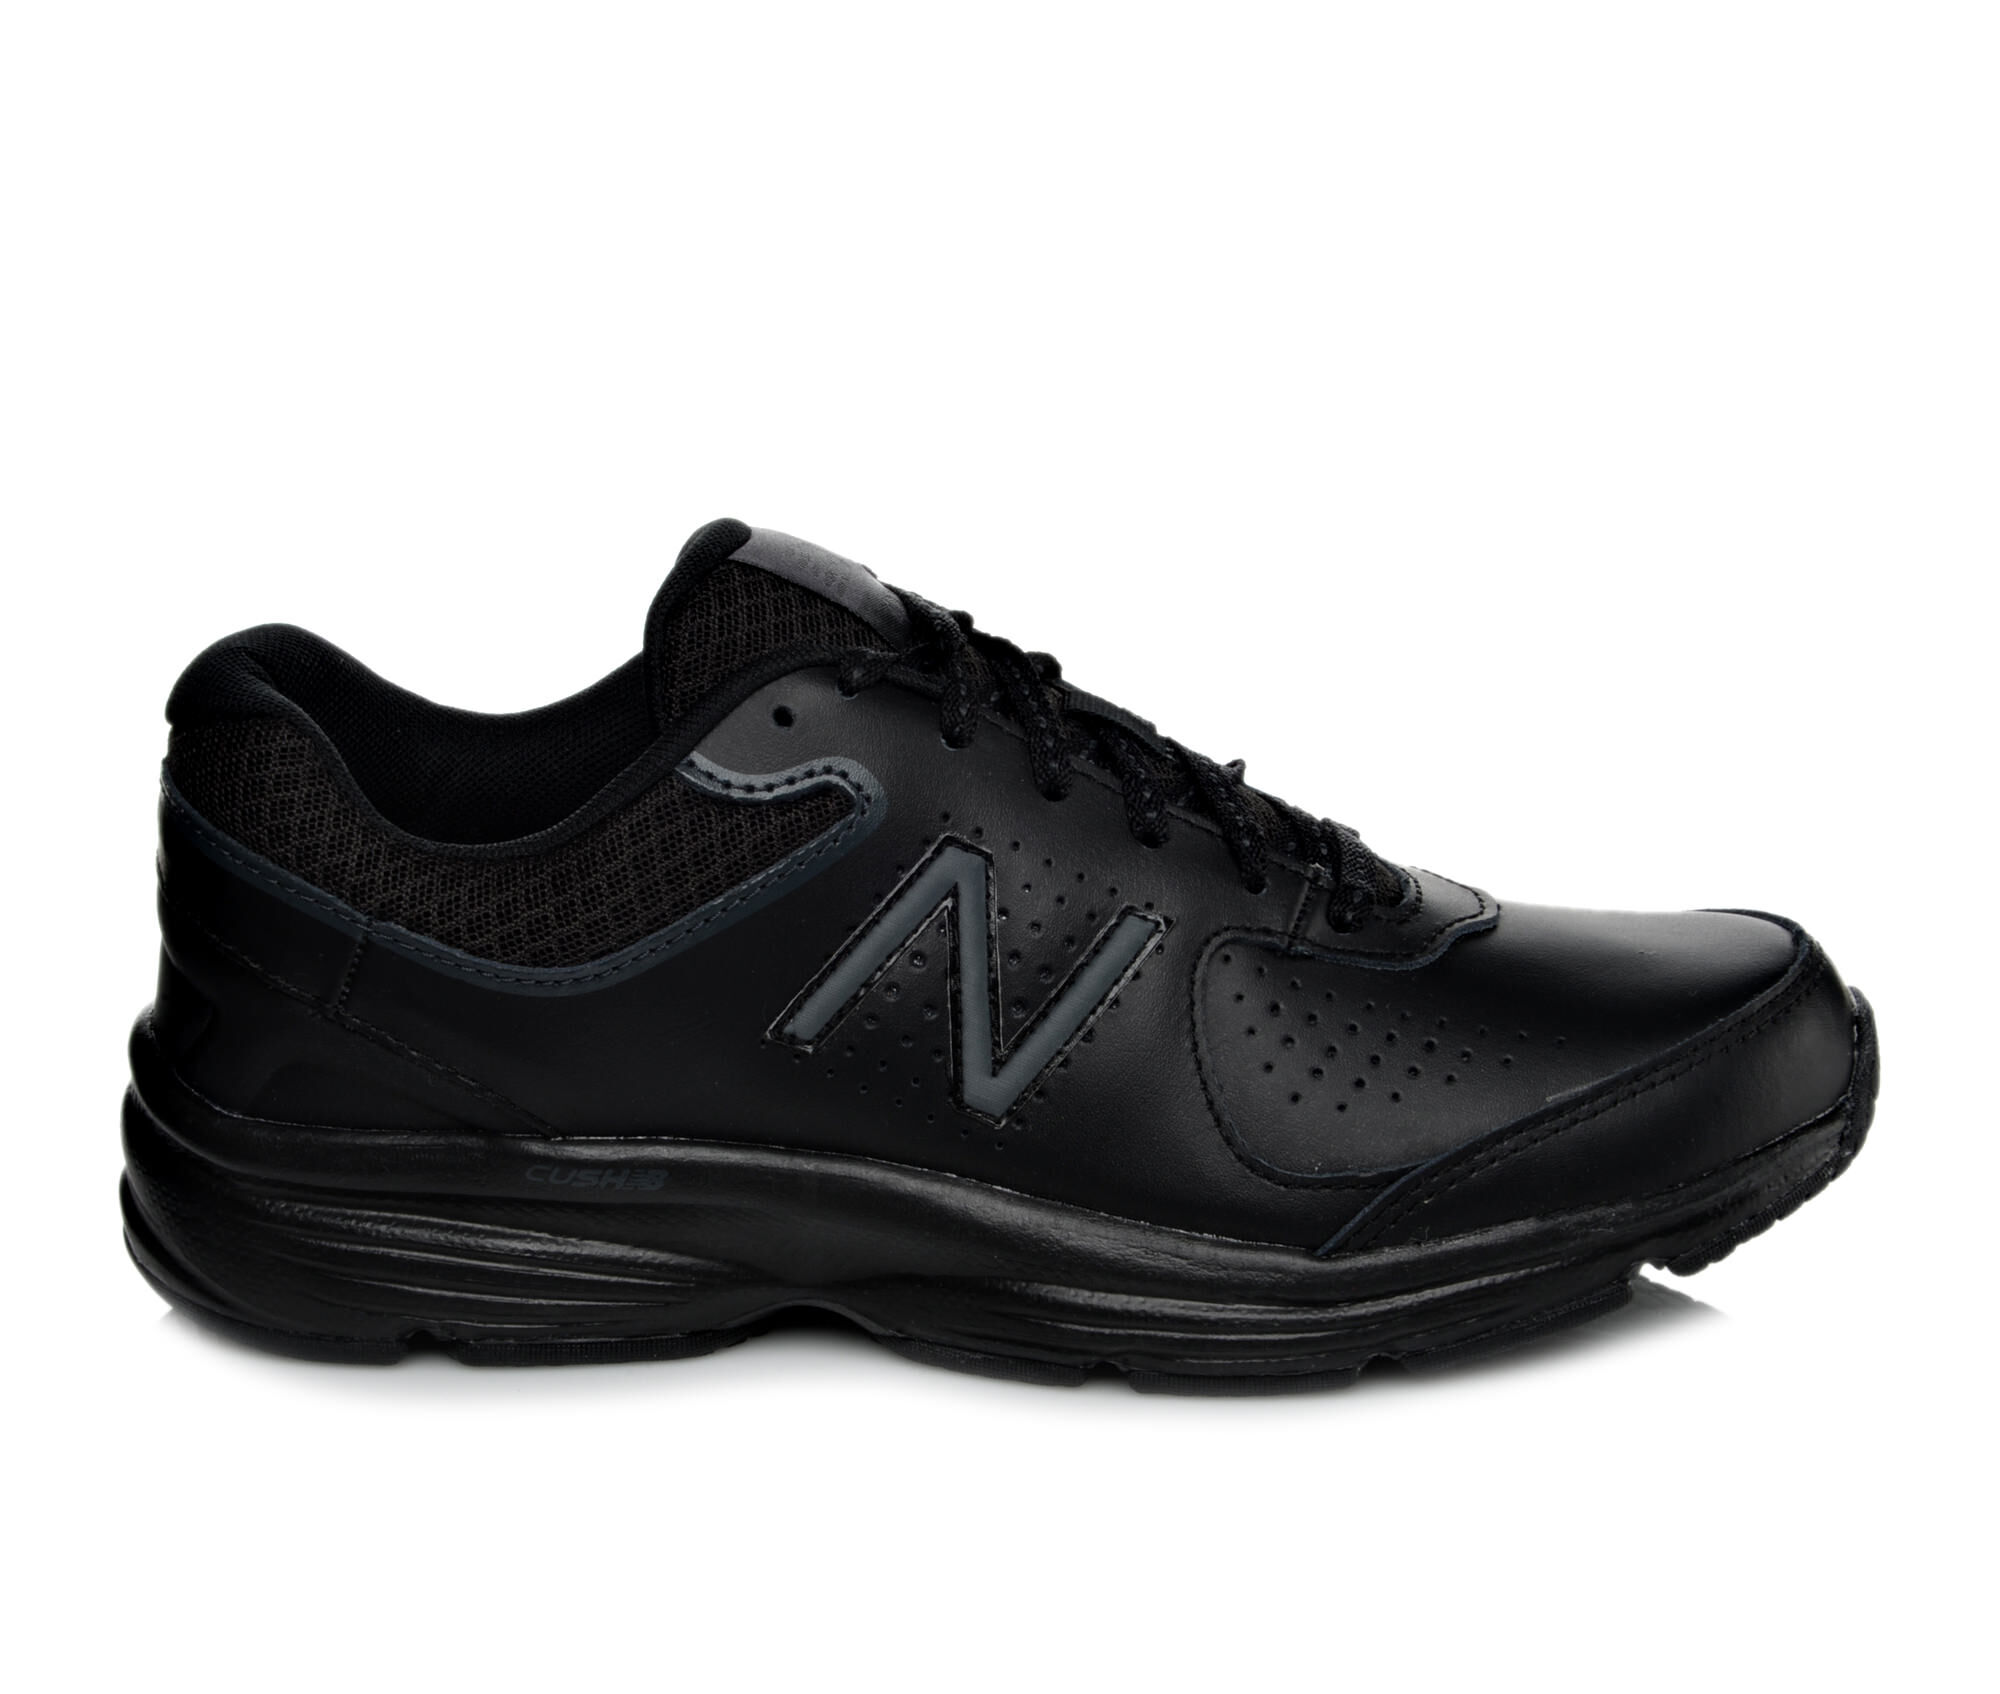 new balance new arrival shoes new balance black and white